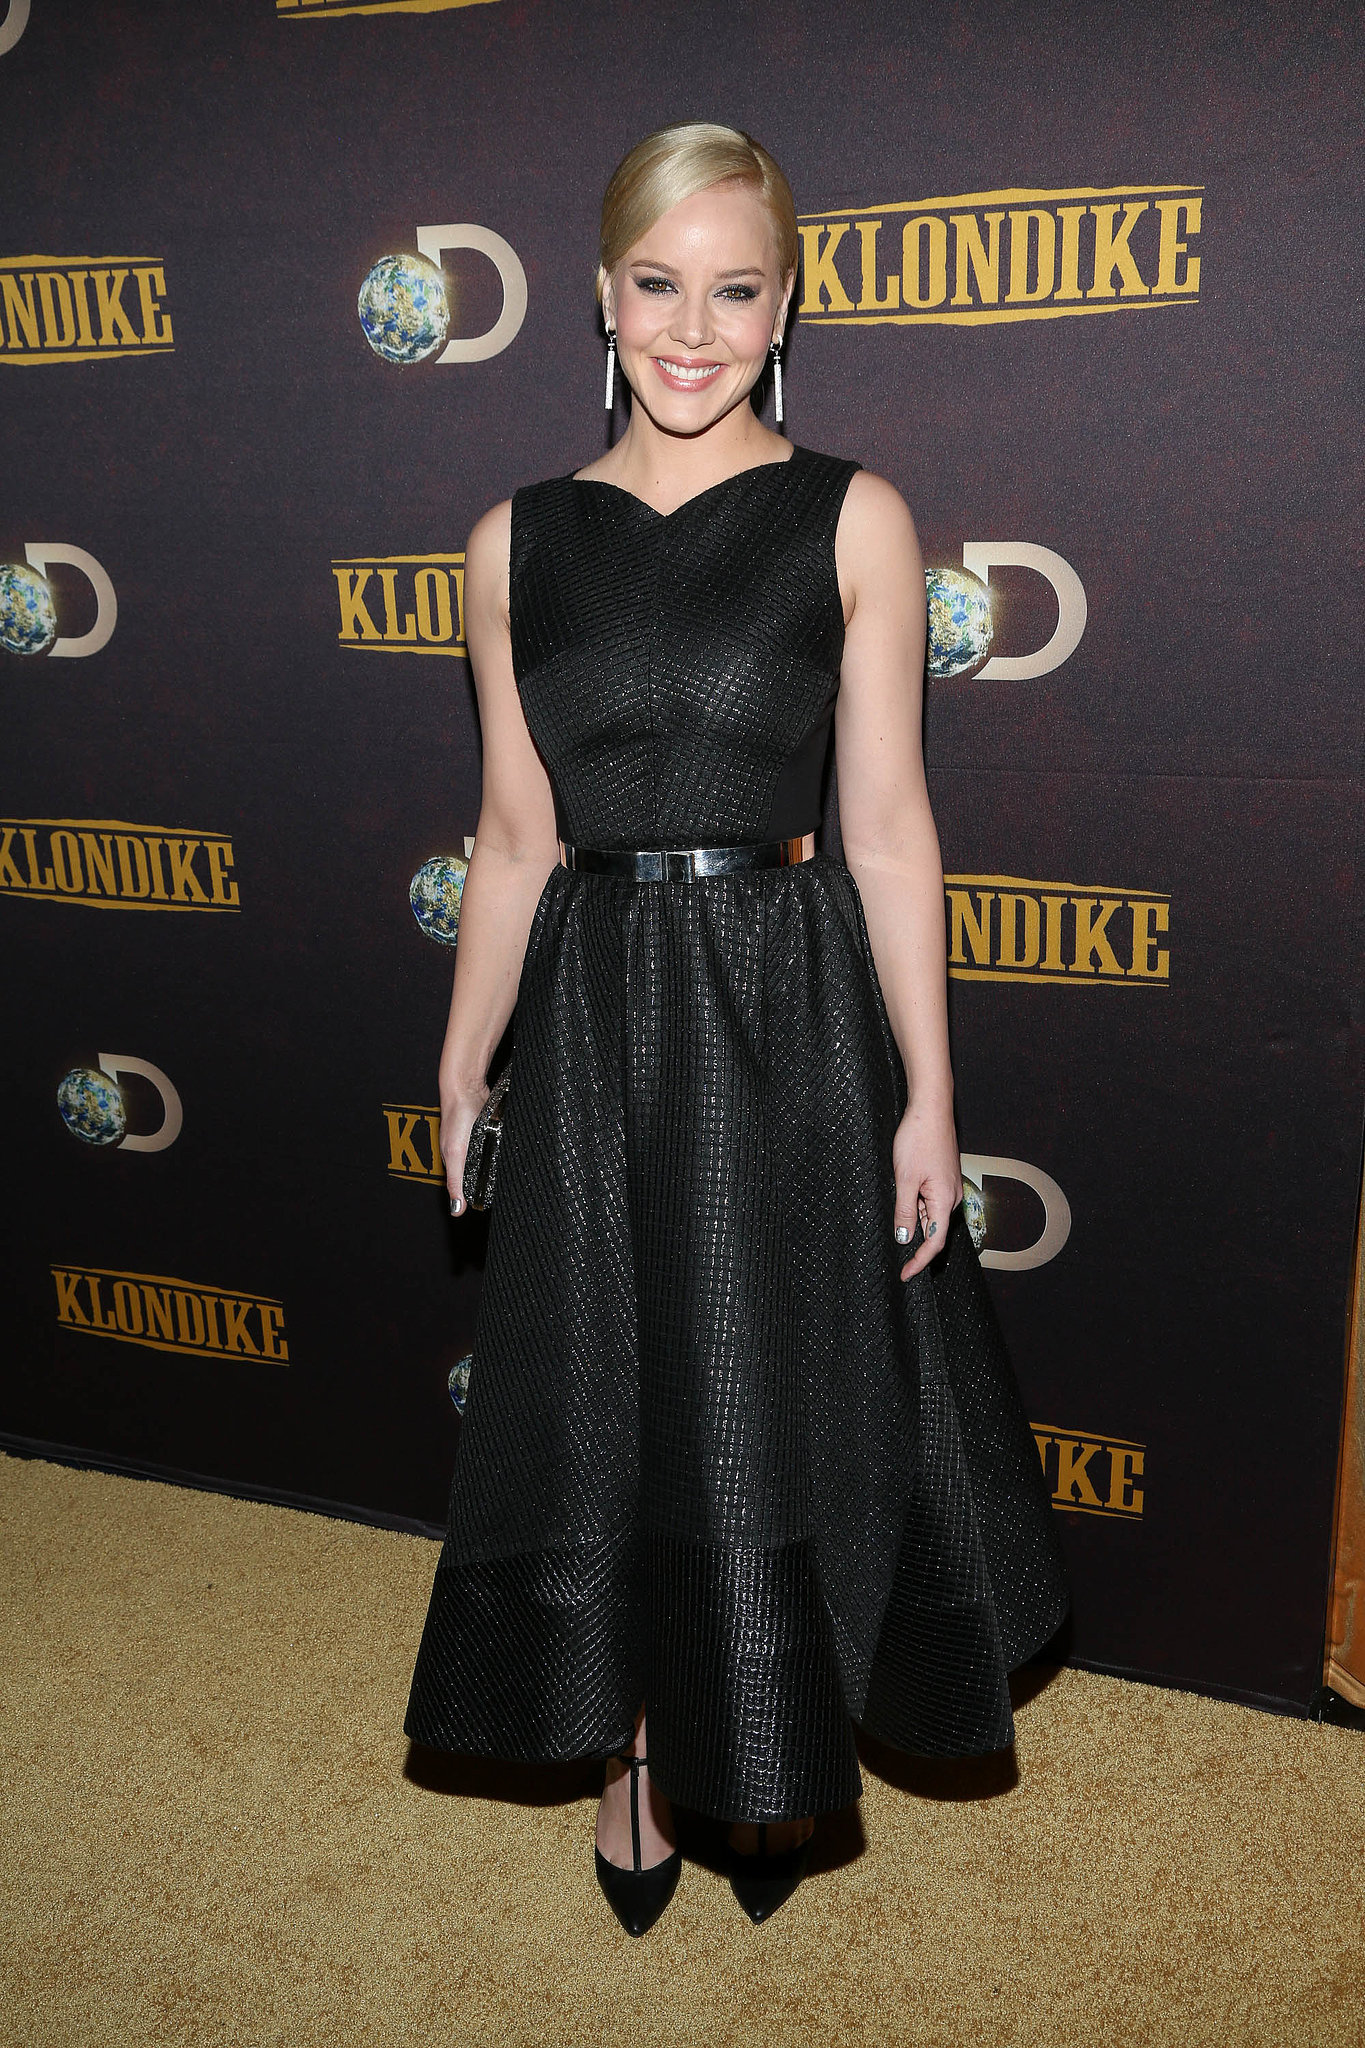 Abbie-Cornish-Klondike-New-York-Premiere